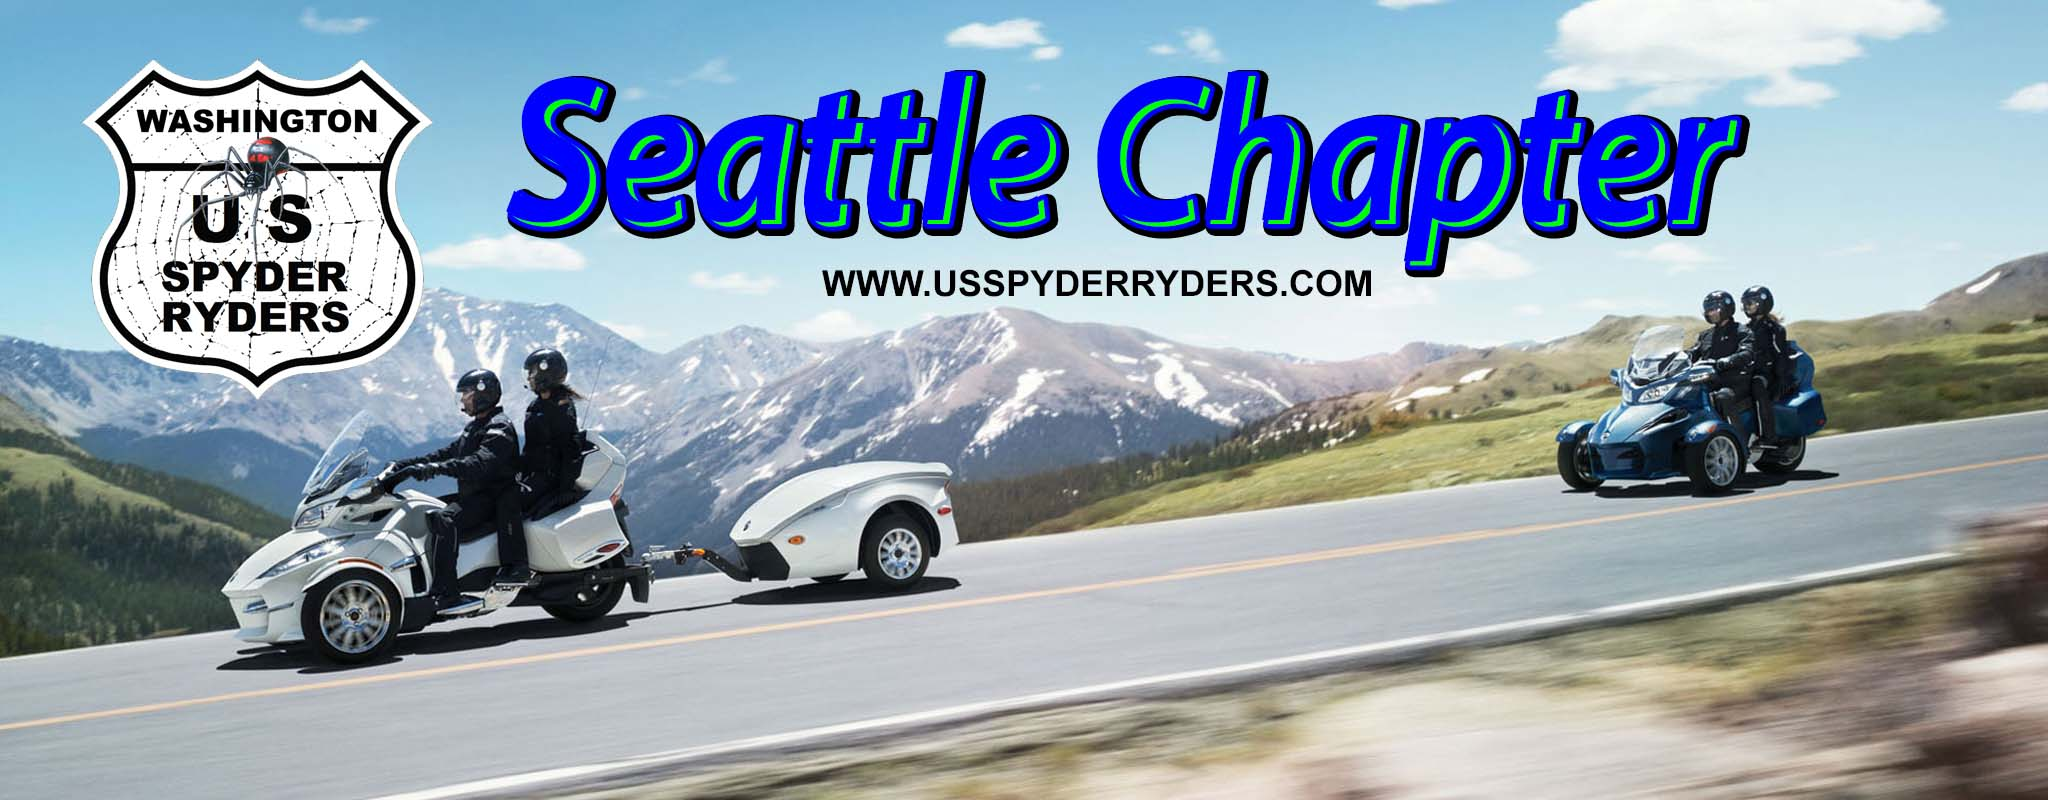 Seattle Chapter Facebook page.jpg